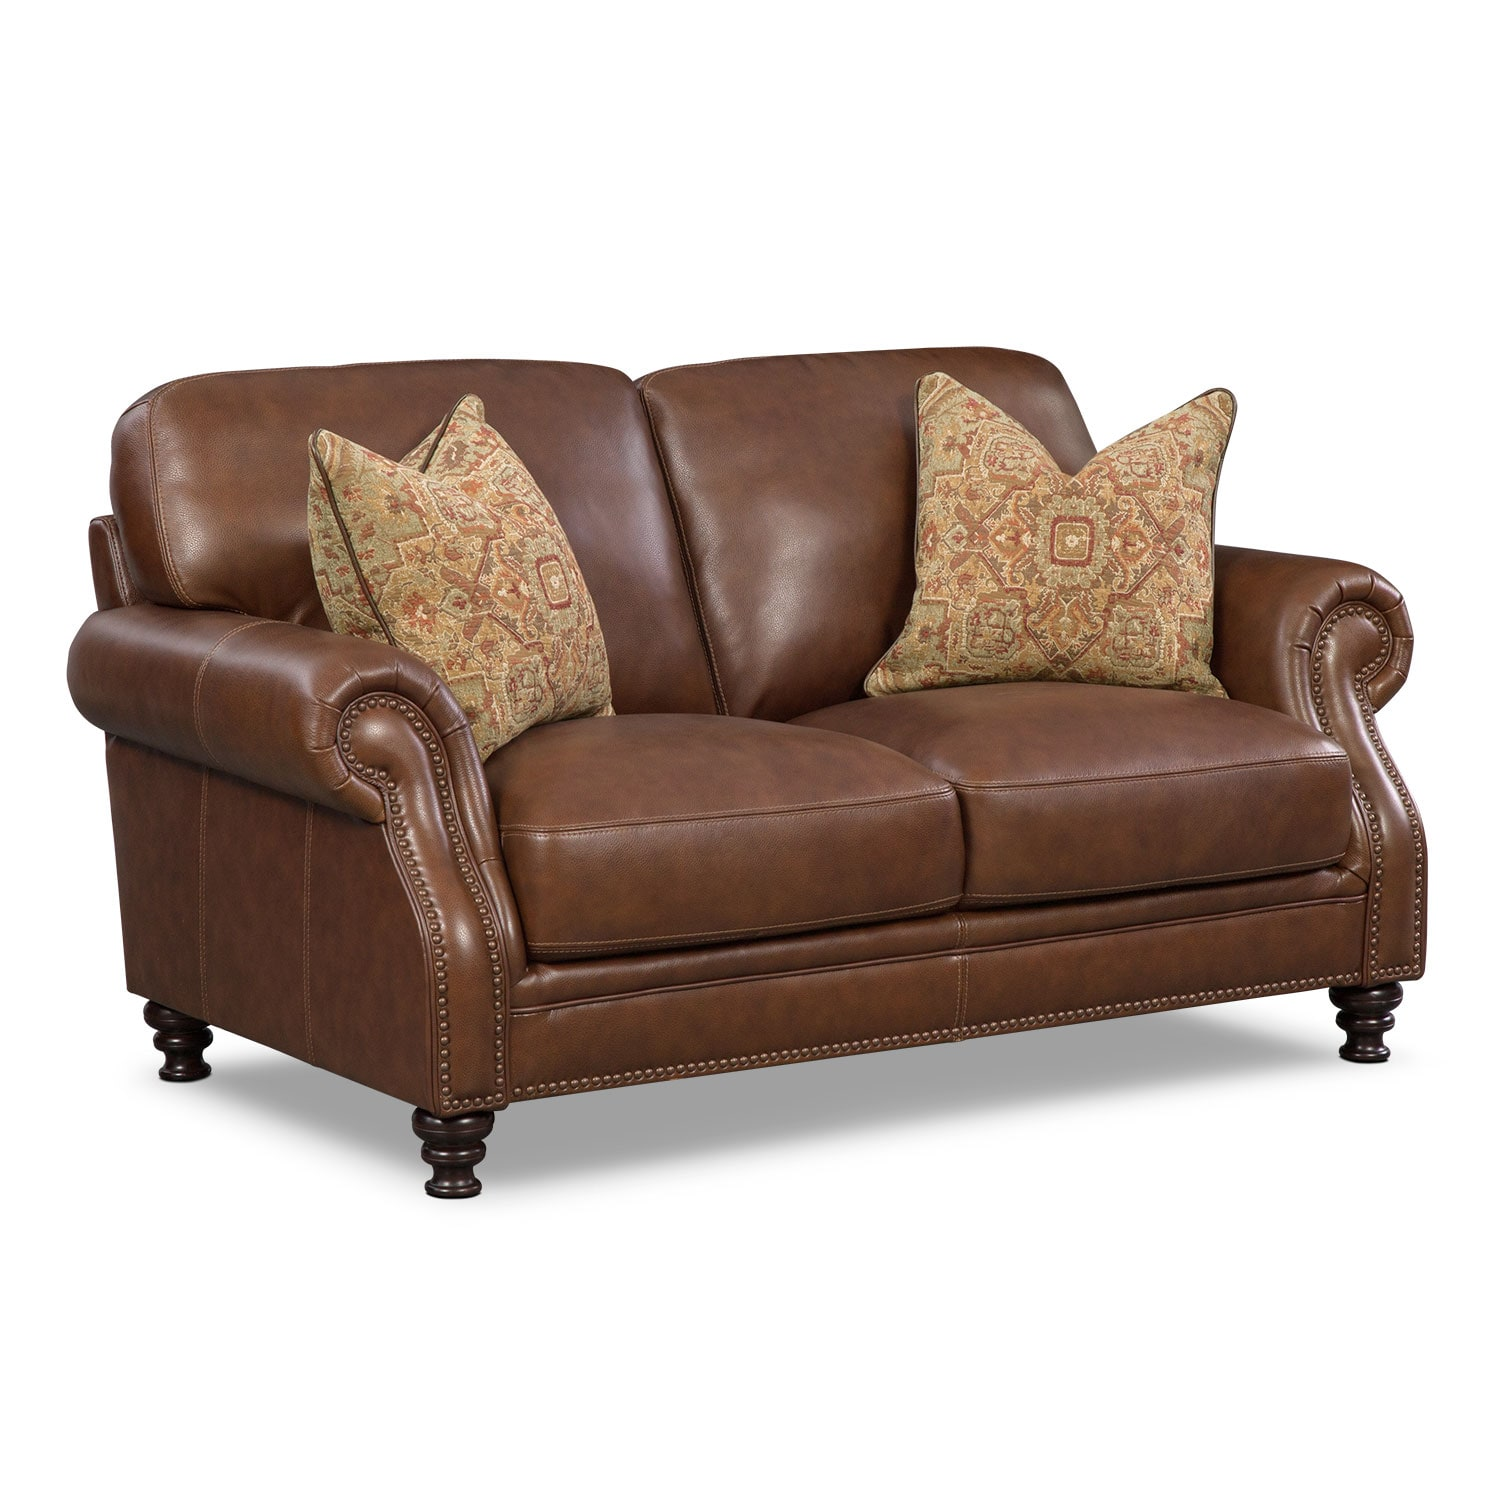 Living Room Furniture - Carrington Tobacco Loveseat